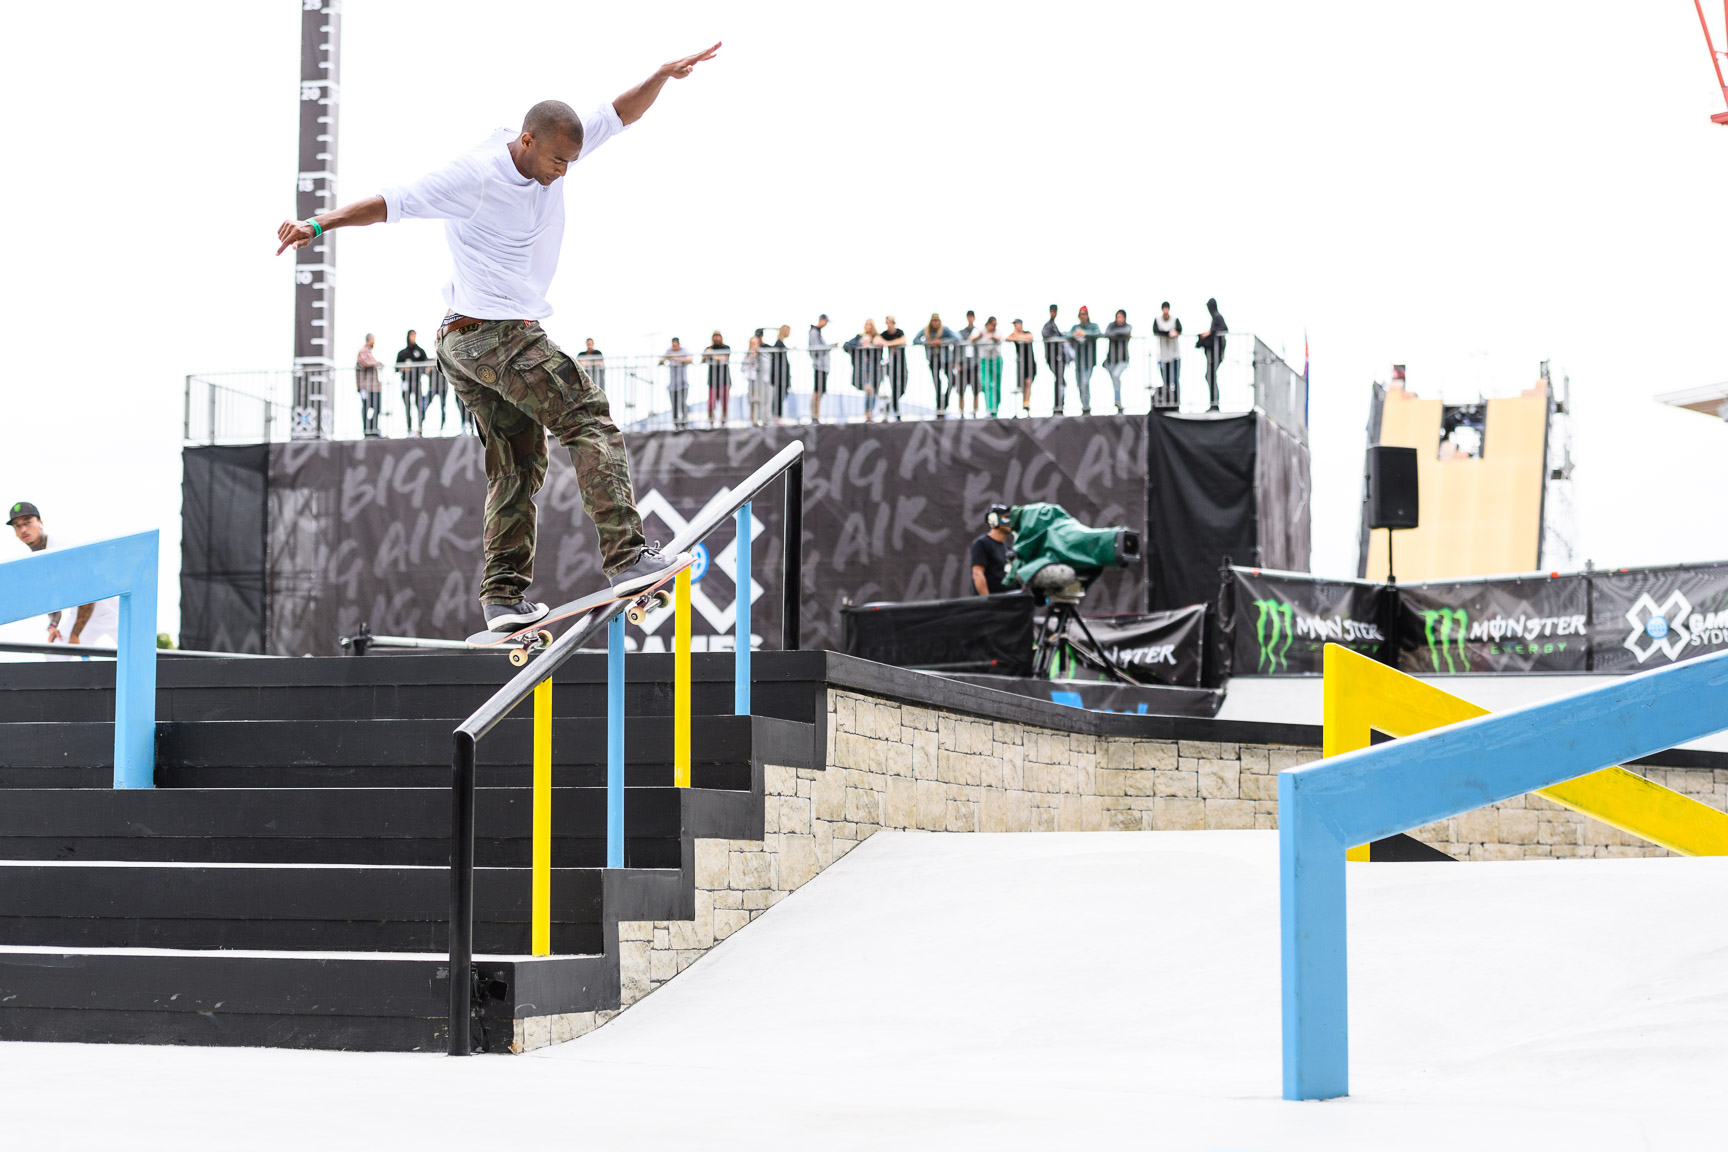 Tommy Fynn, Men's Skateboard Street